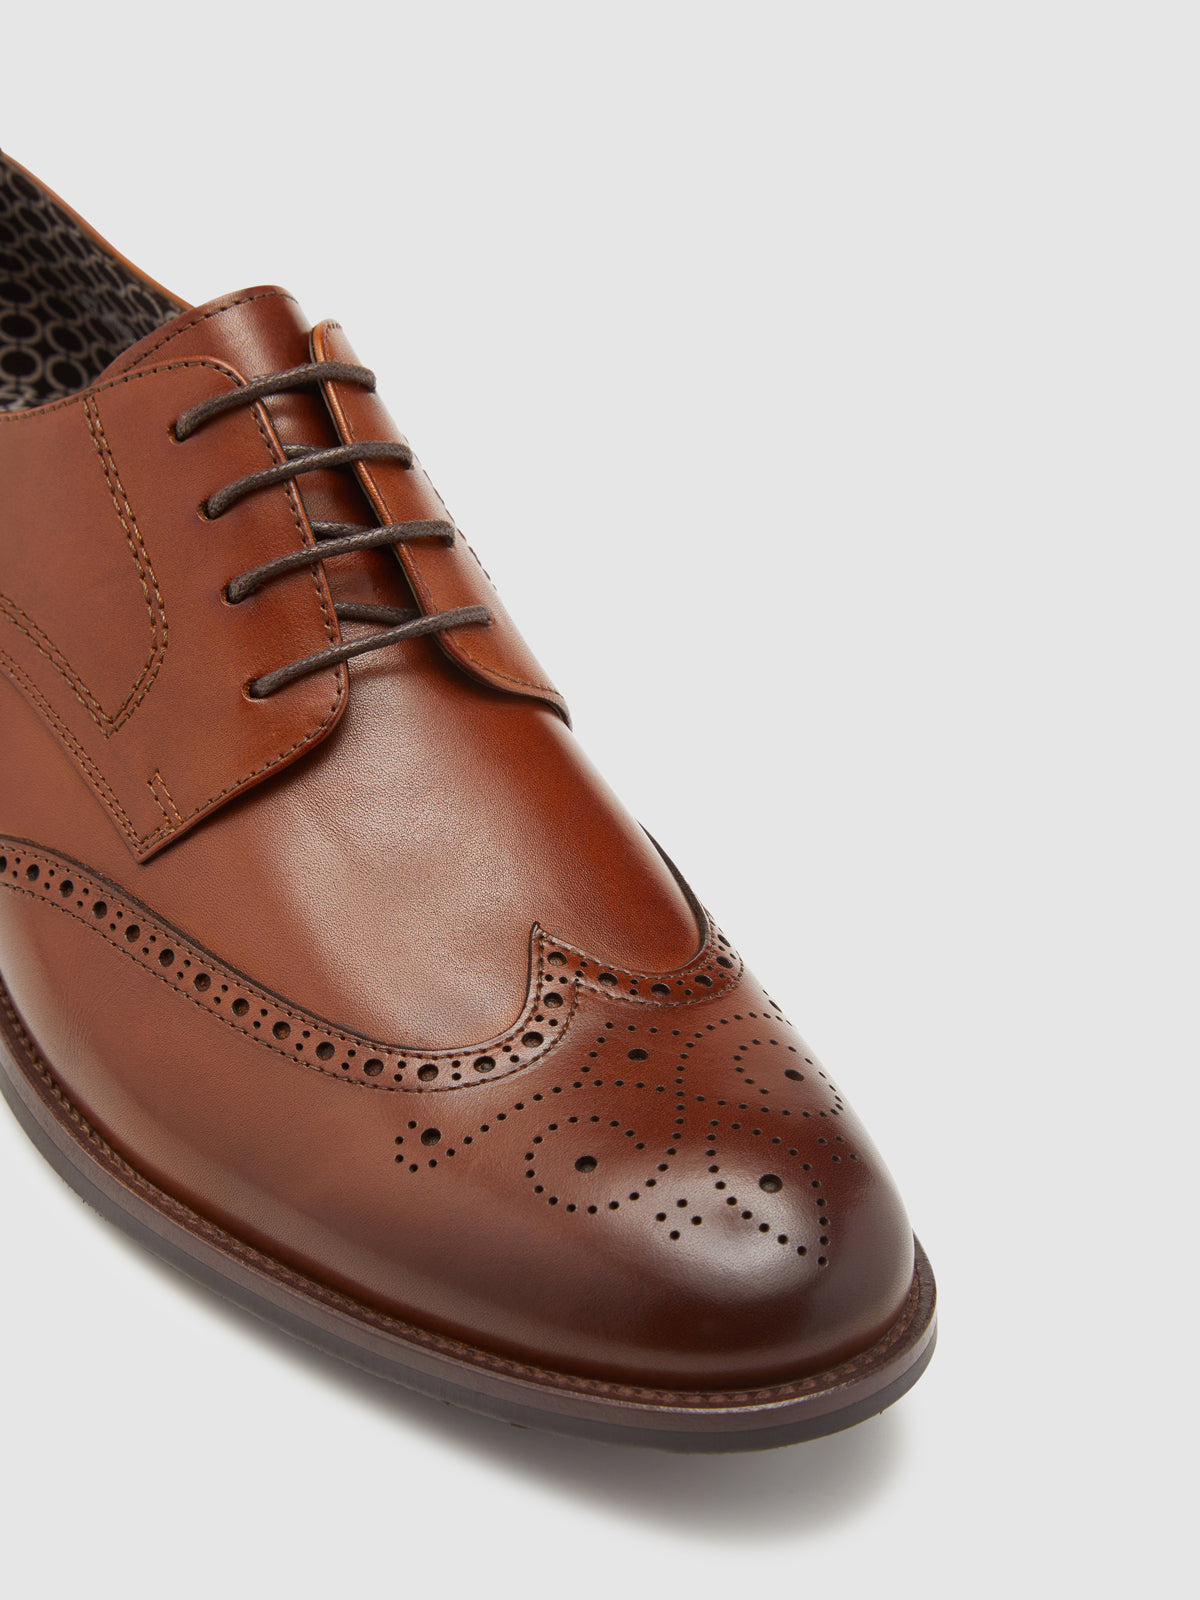 ELMER LEATHER BROGUE SHOE